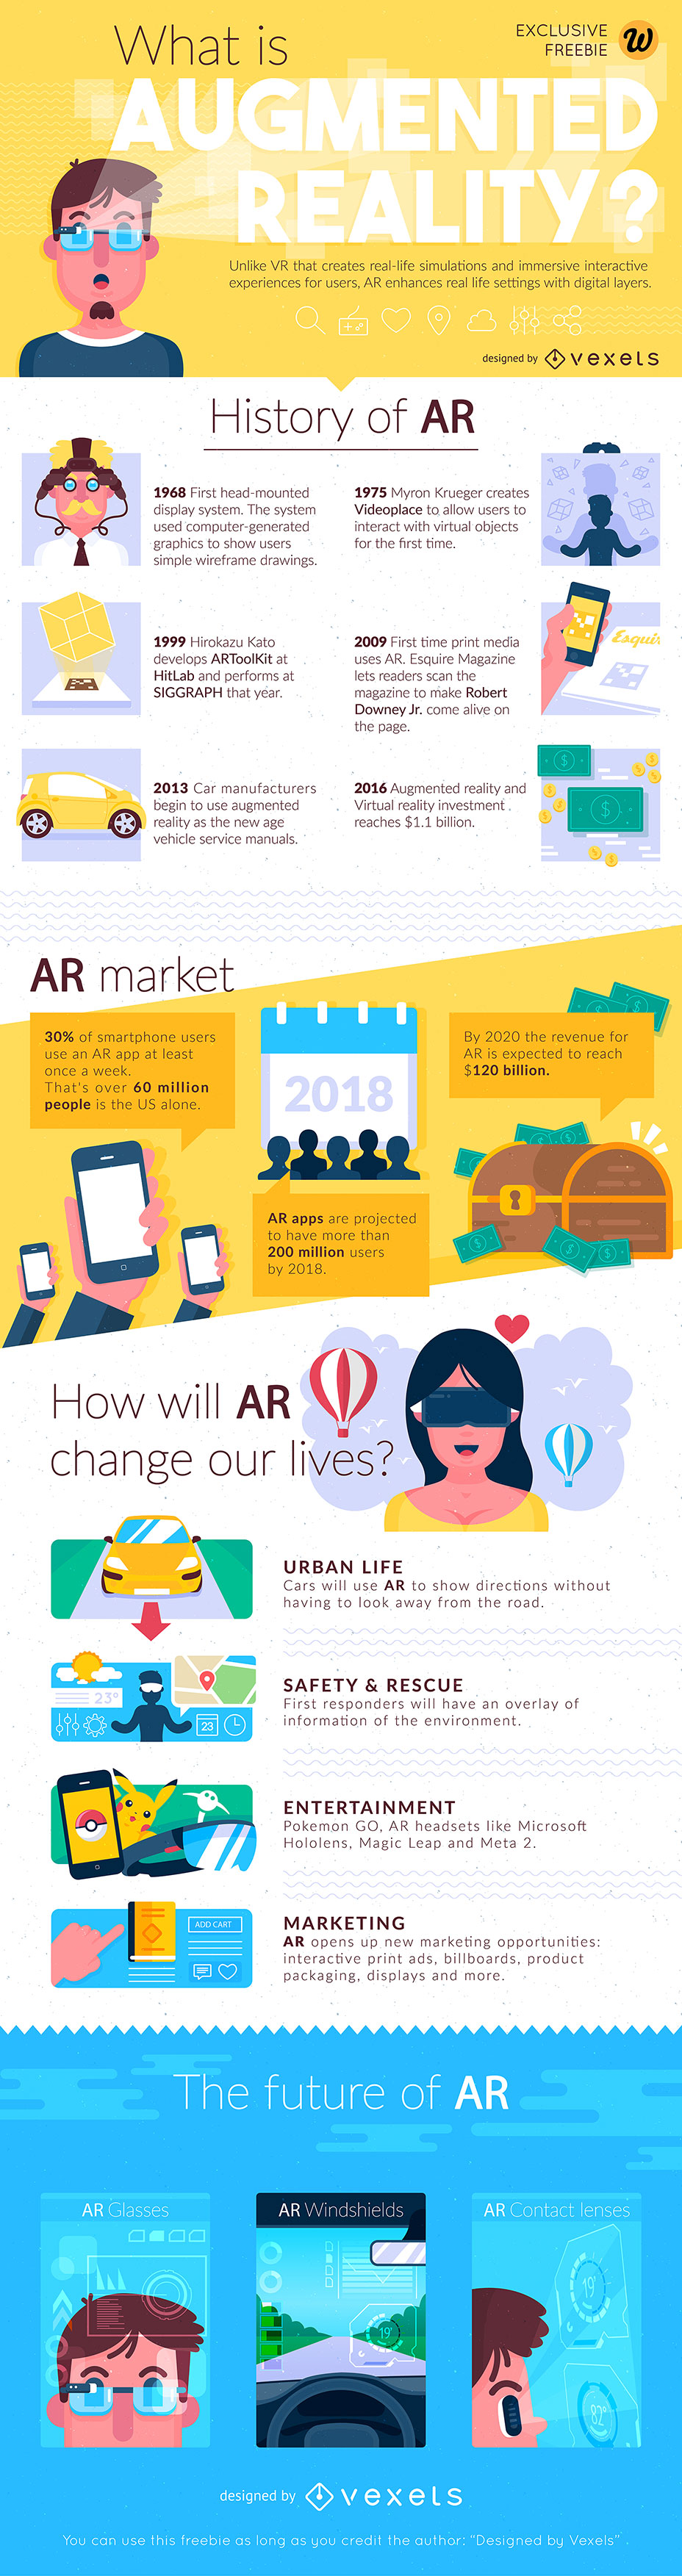 Opportunities for Augmented Reality in 2018